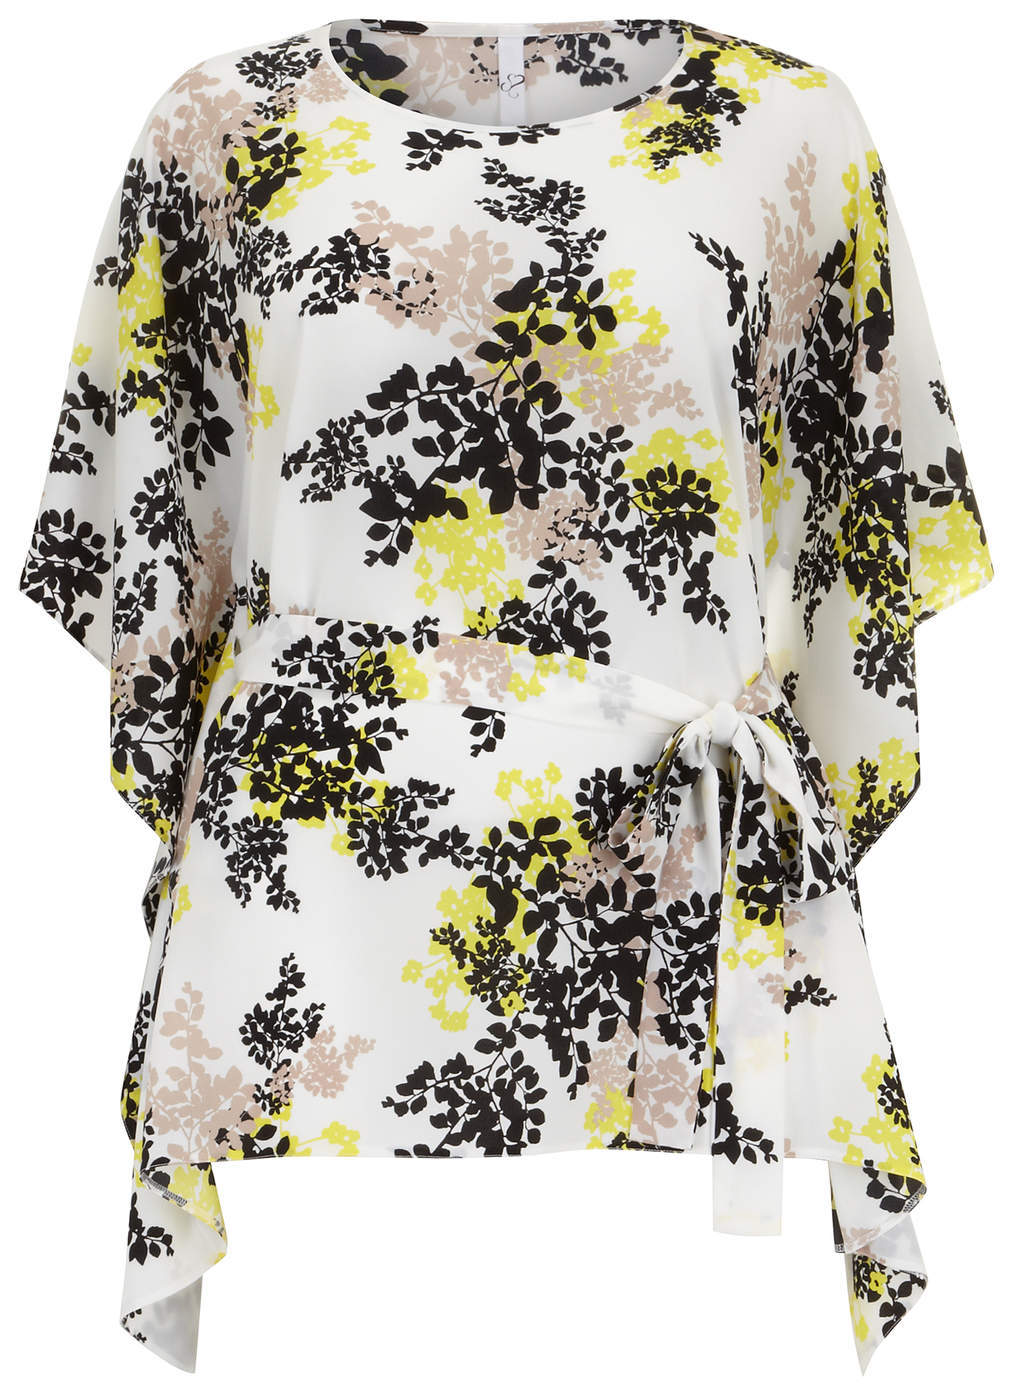 Ivory Floral Print Top - neckline: round neck; sleeve style: kimono; waist detail: belted waist/tie at waist/drawstring; predominant colour: white; secondary colour: yellow; occasions: casual, evening, holiday; length: standard; style: top; fibres: polyester/polyamide - 100%; fit: body skimming; sleeve length: 3/4 length; pattern type: fabric; pattern: florals; texture group: other - light to midweight; season: s/s 2014